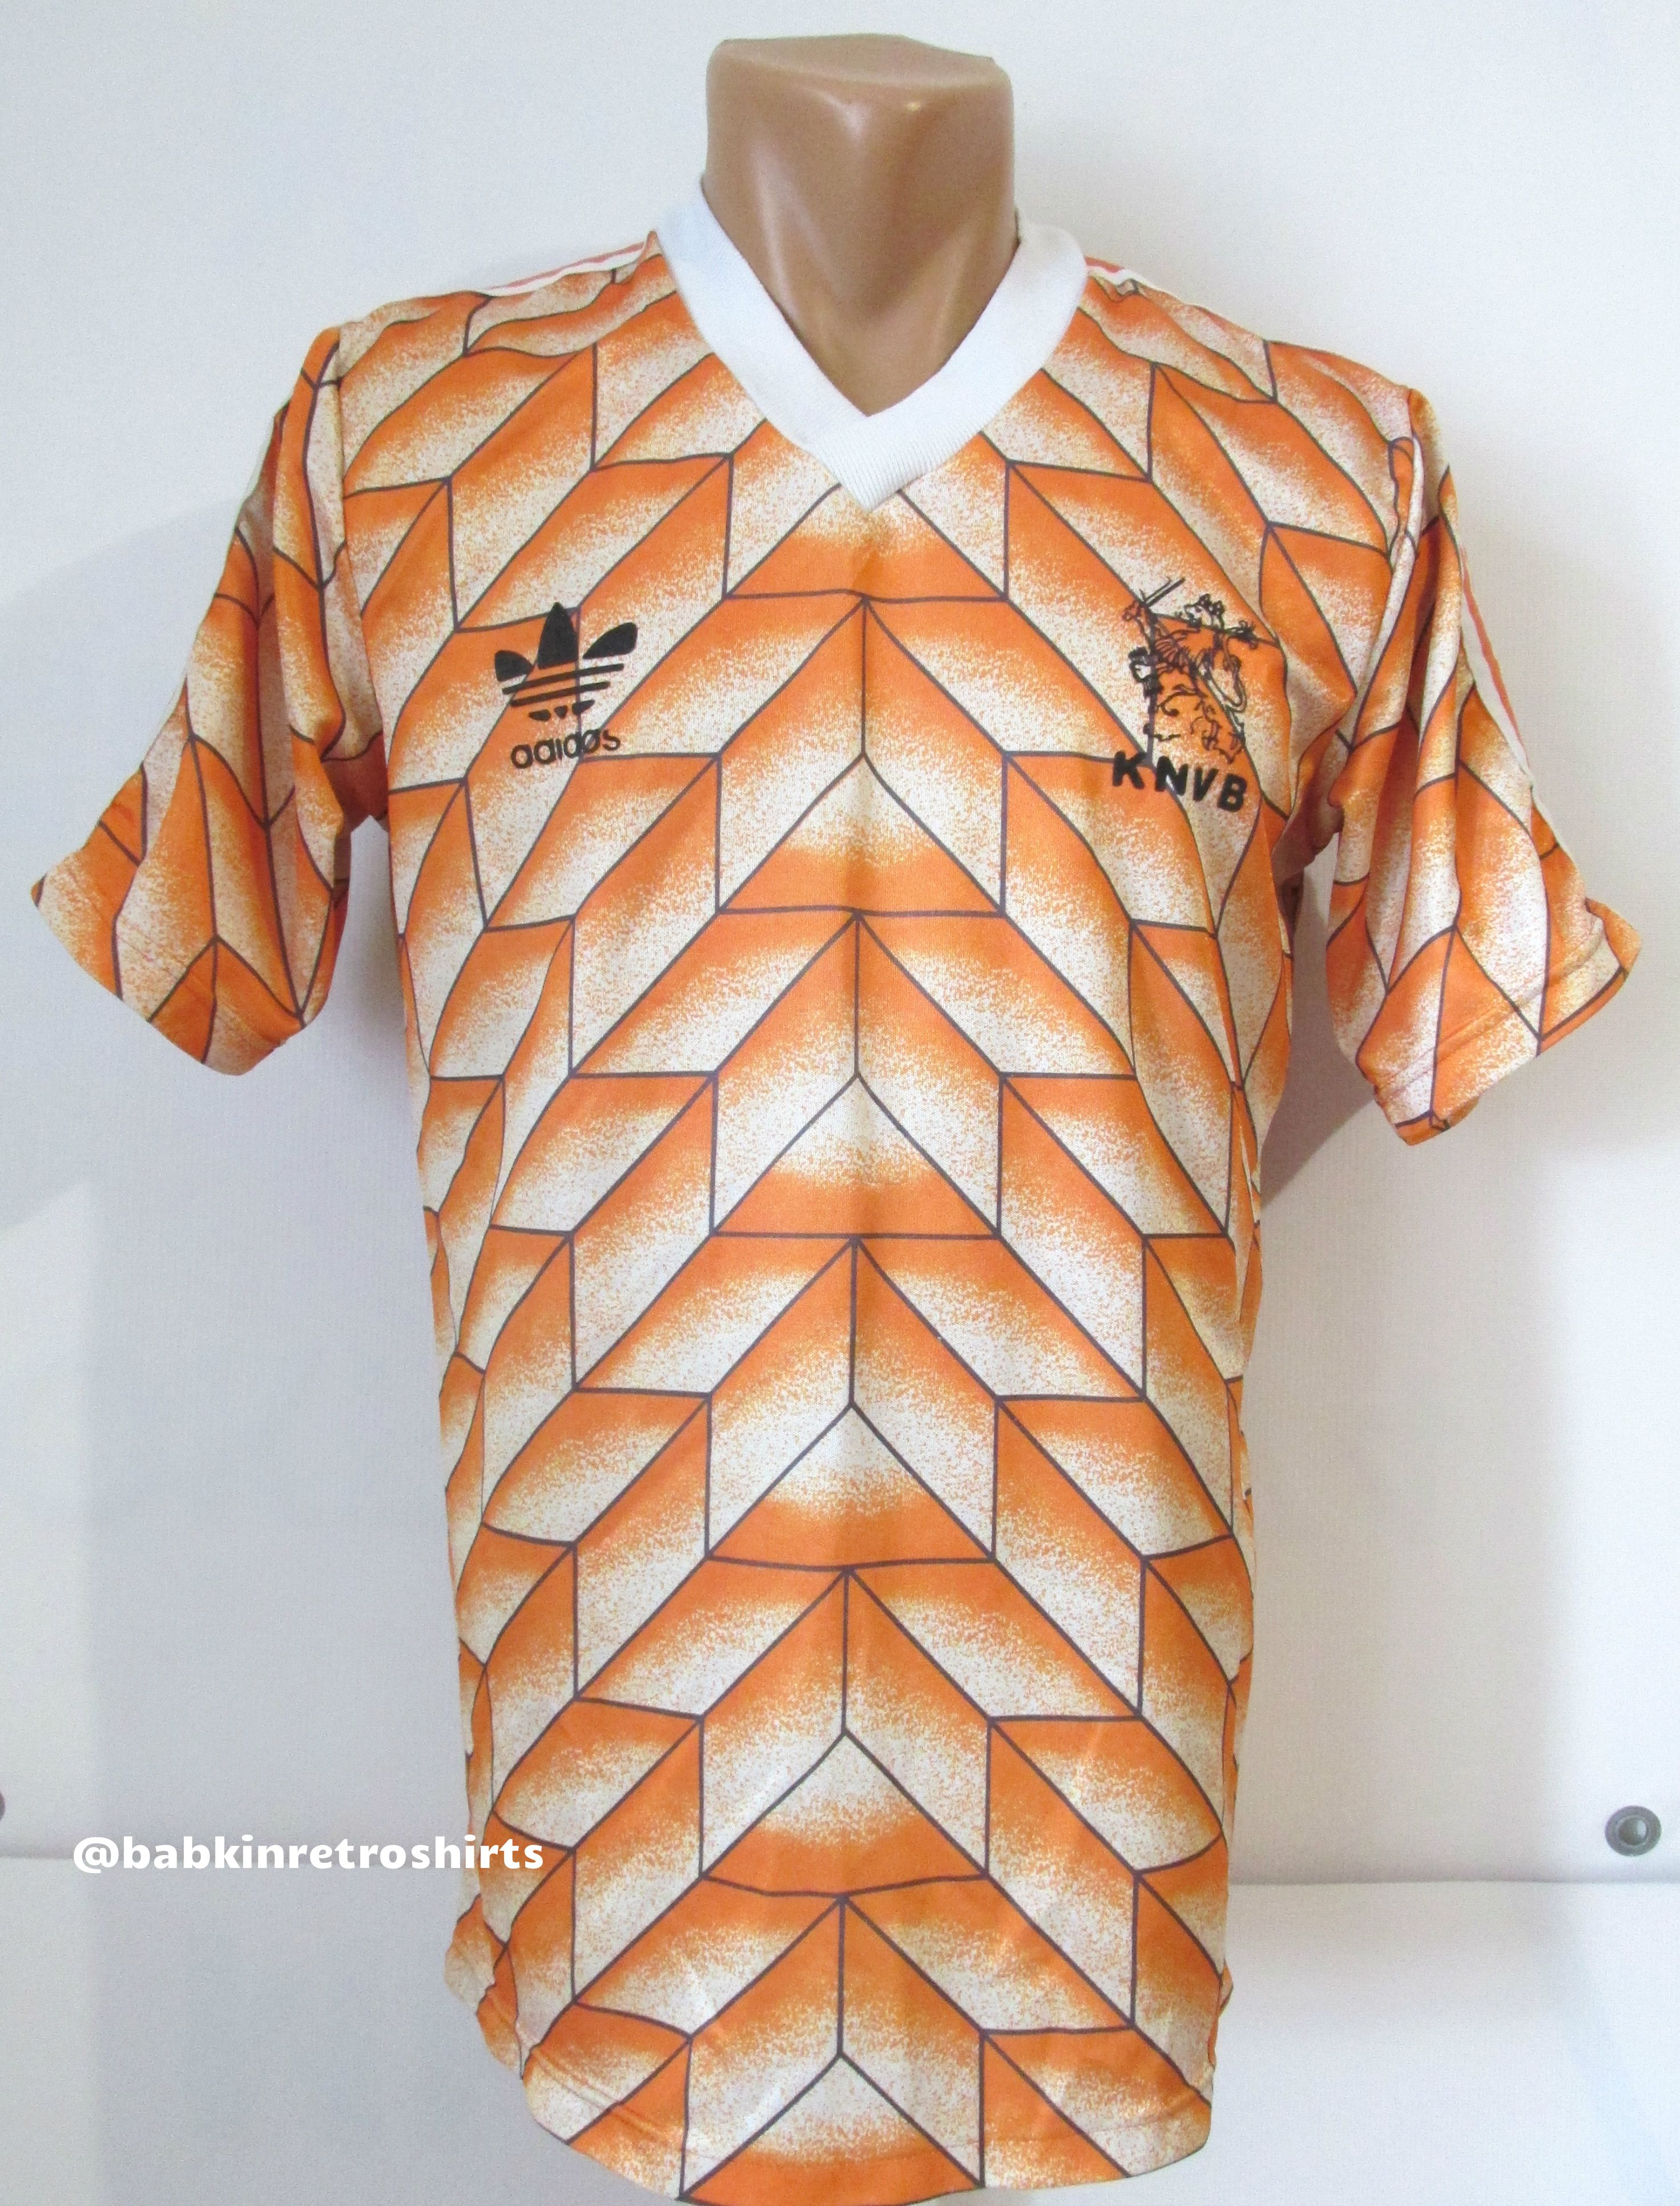 cheaper 010b6 001a0 Holland Euro 1988 home rare football shirt by Adidas KNVB ...